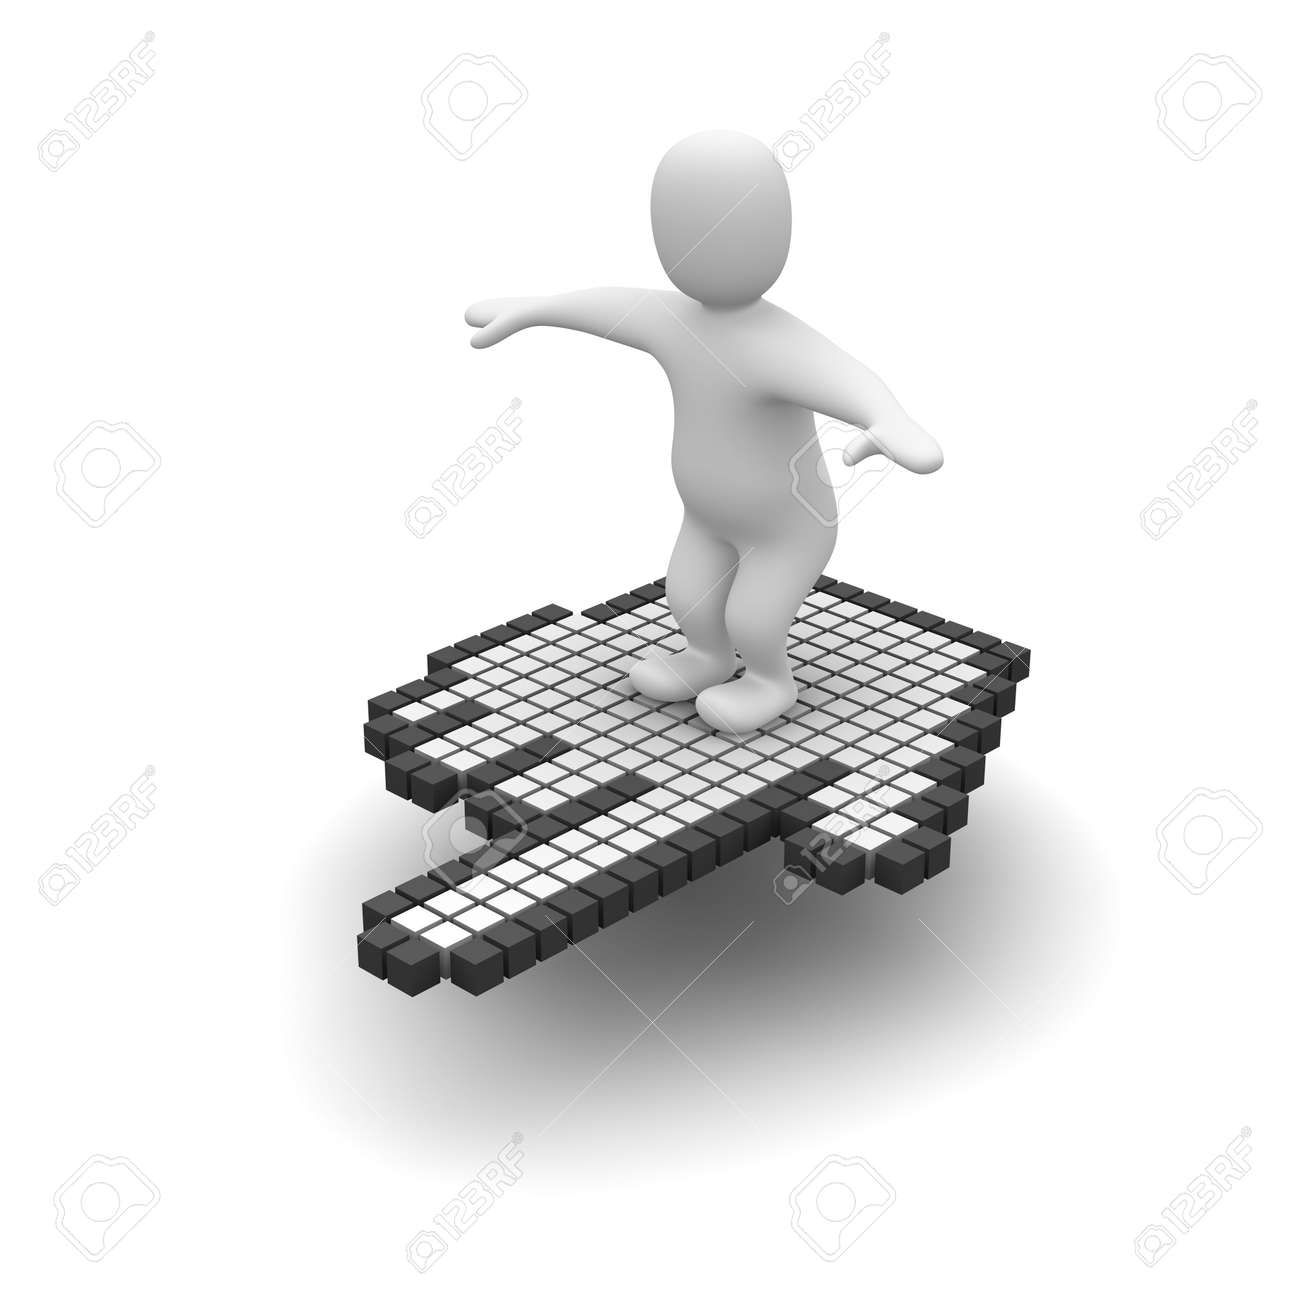 Man flying on computer mouse cursor. 3d rendered illustration. Stock Photo - 4835392